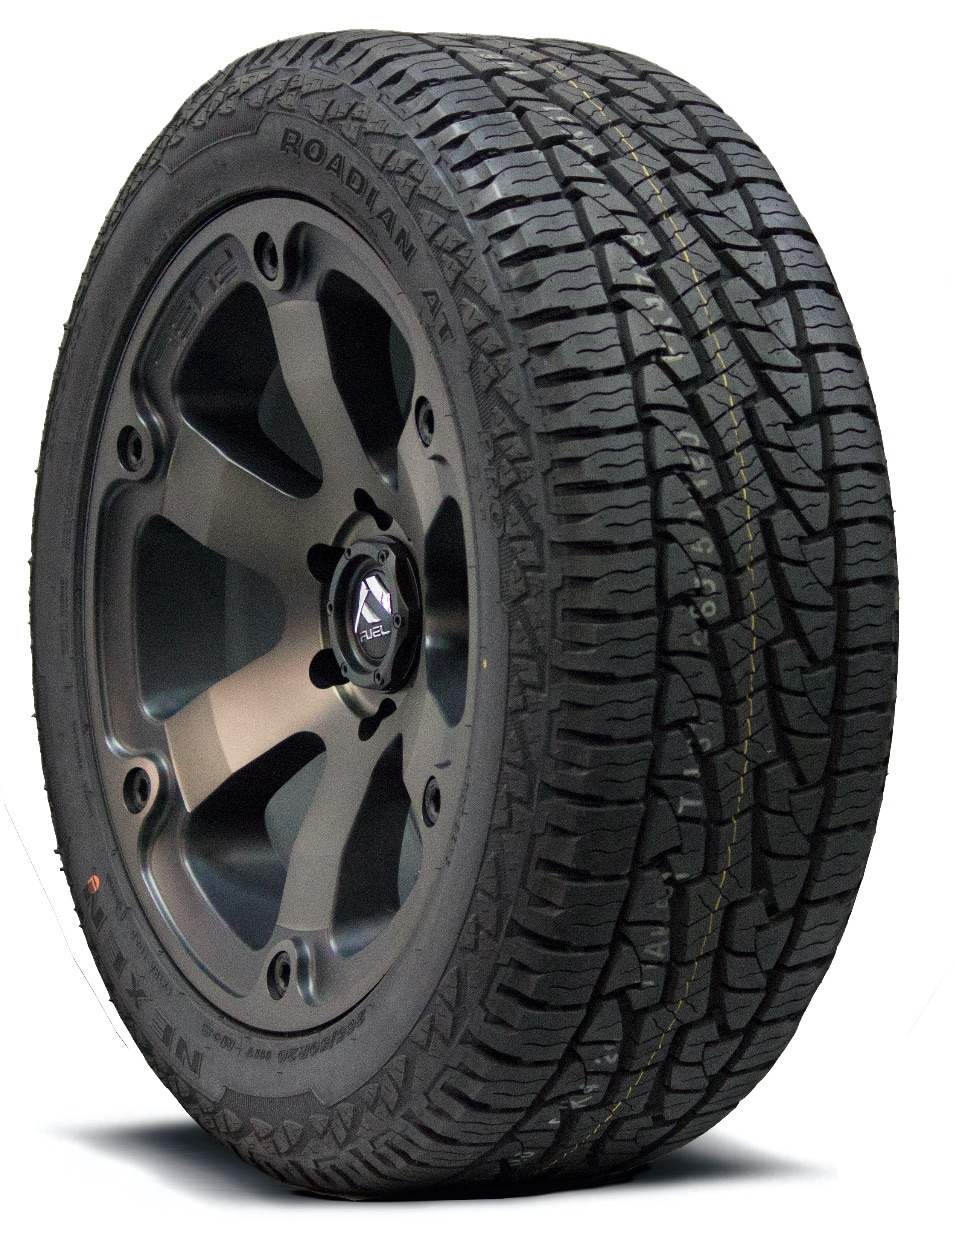 ROADIAN AT PRO RA8 | BLACK LTR (265/70 R16 – Non-directional)